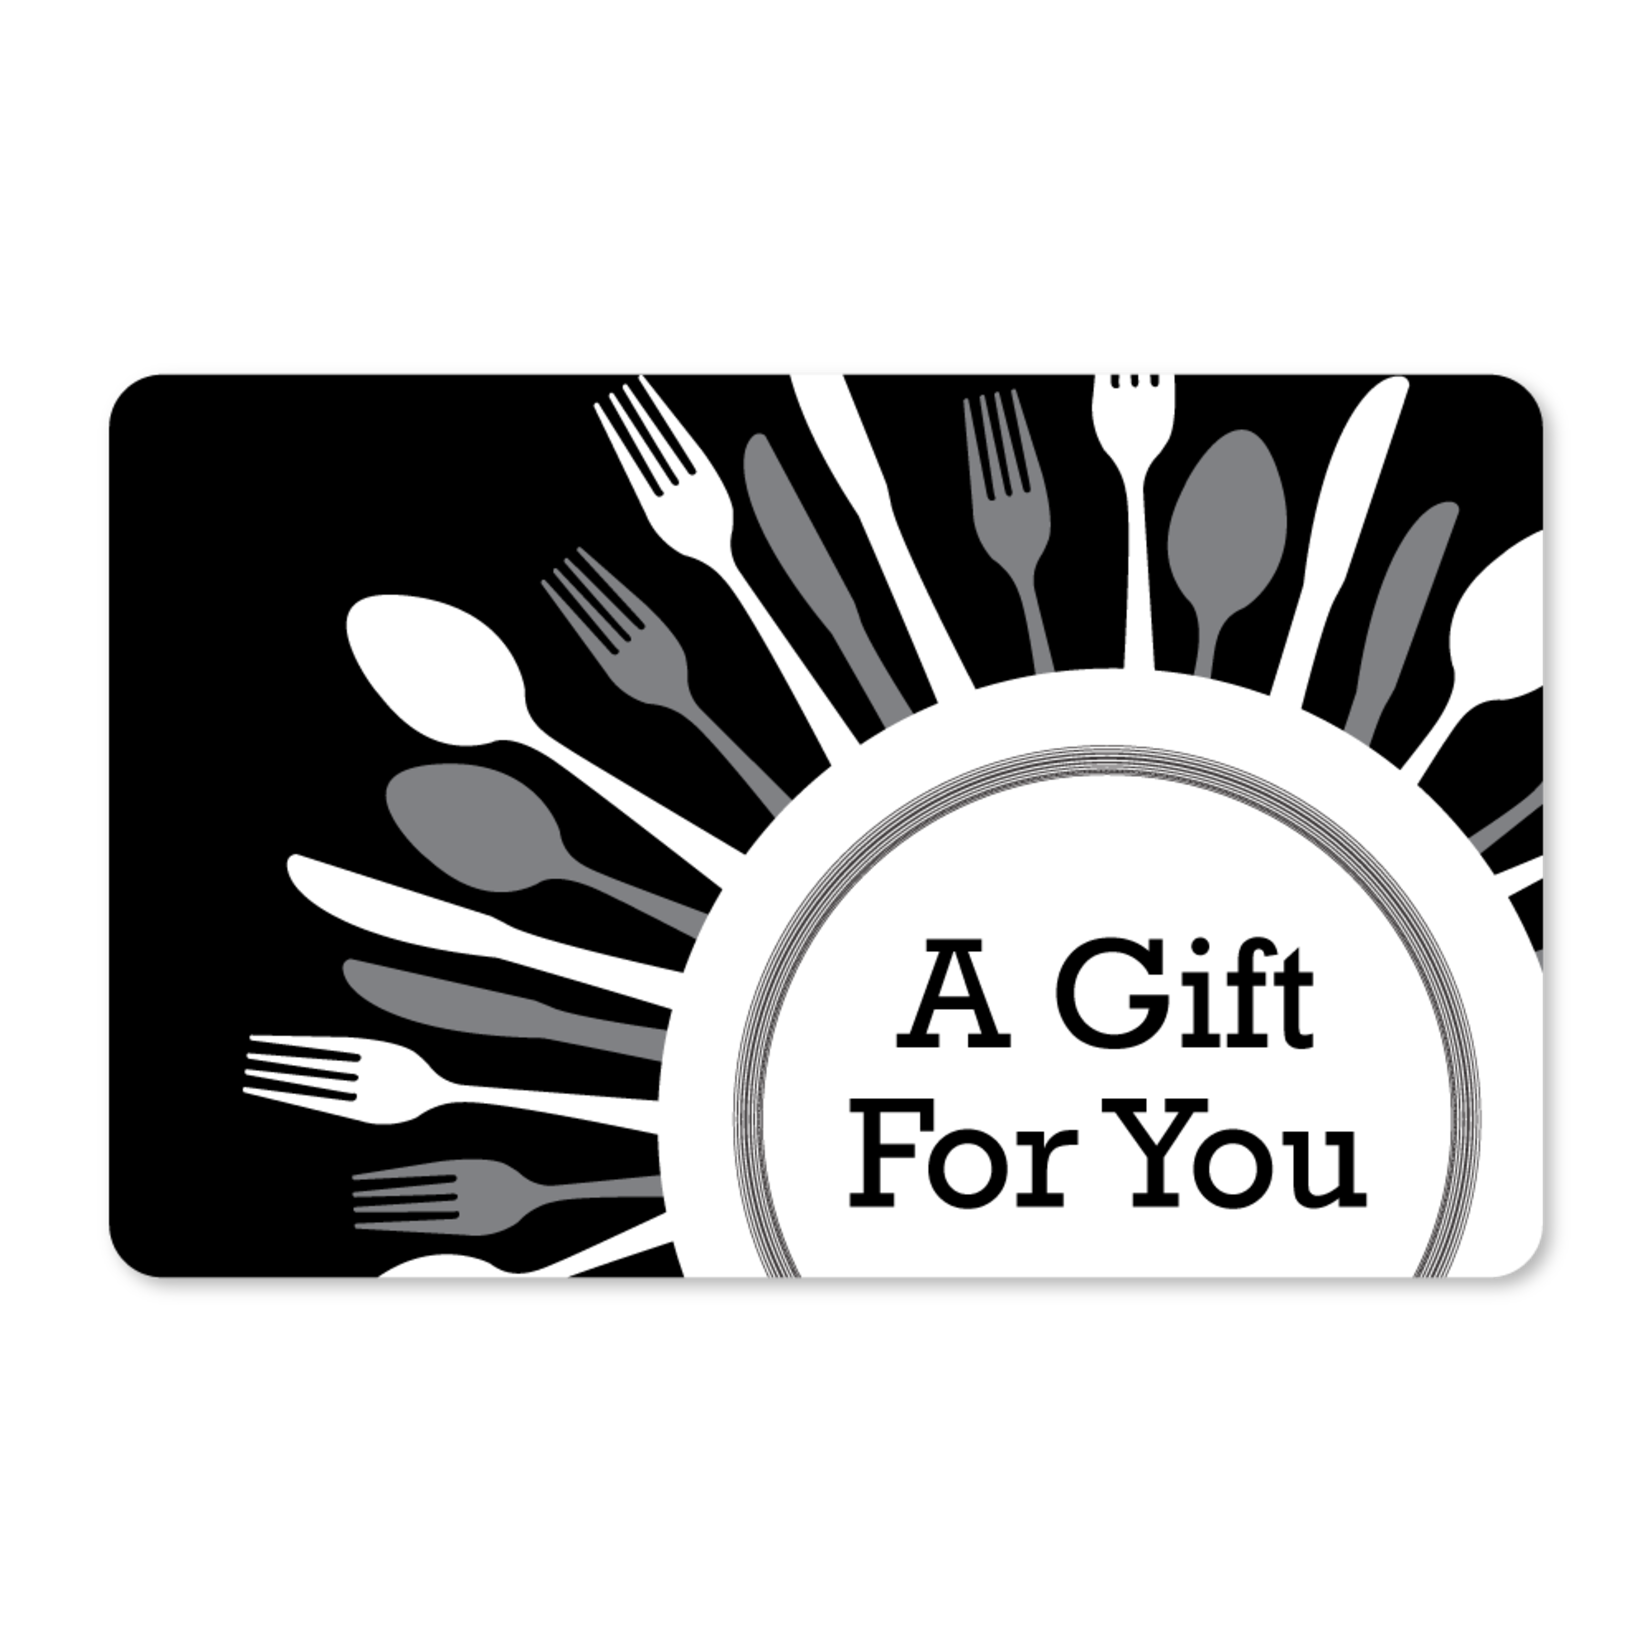 Gift Cards - Plate and Utensils